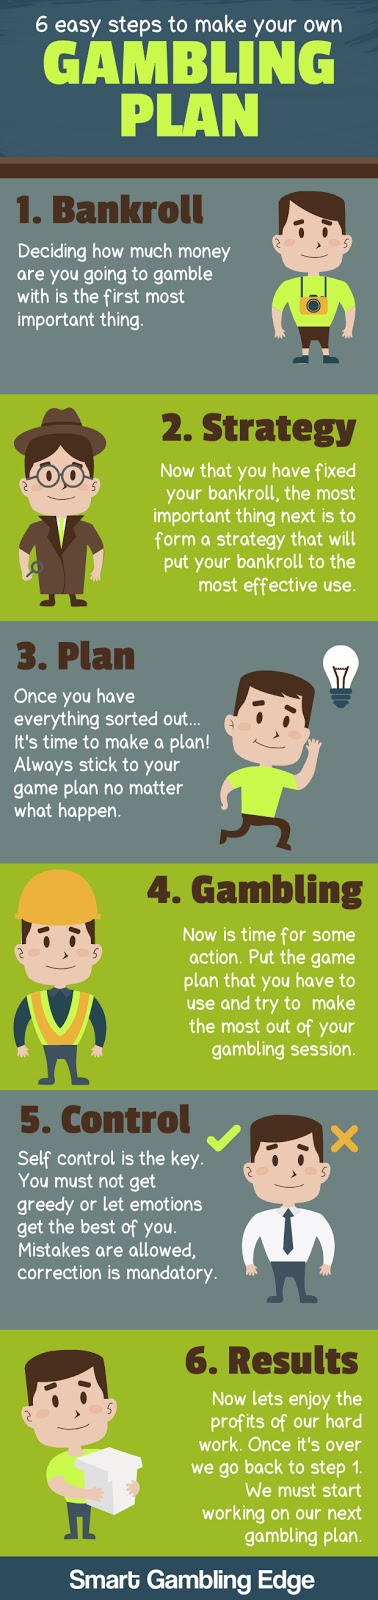 Making your own crypto gambling plan.